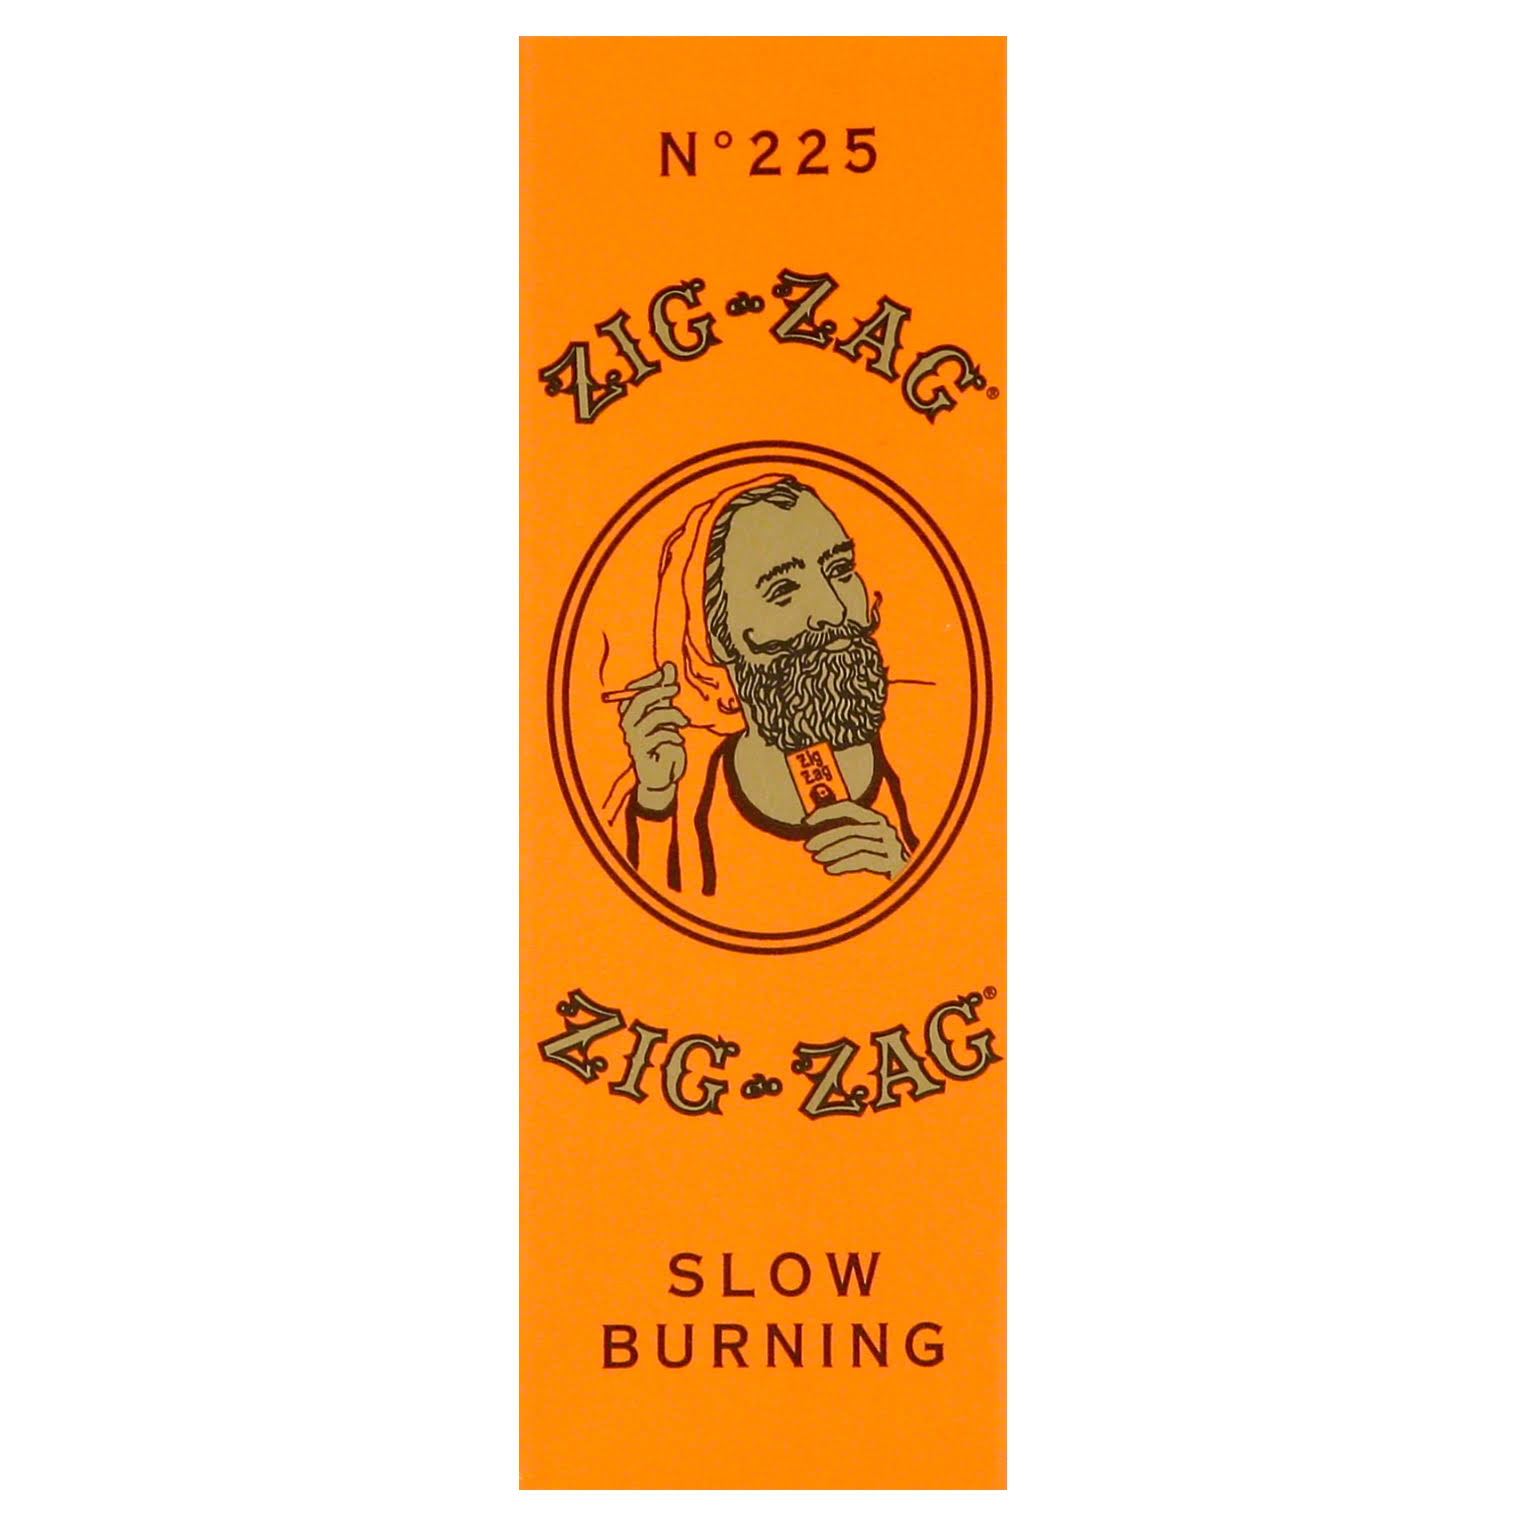 Zig Zag Cigarette Paper, Slow Burning, No. 225 - 32 leaves